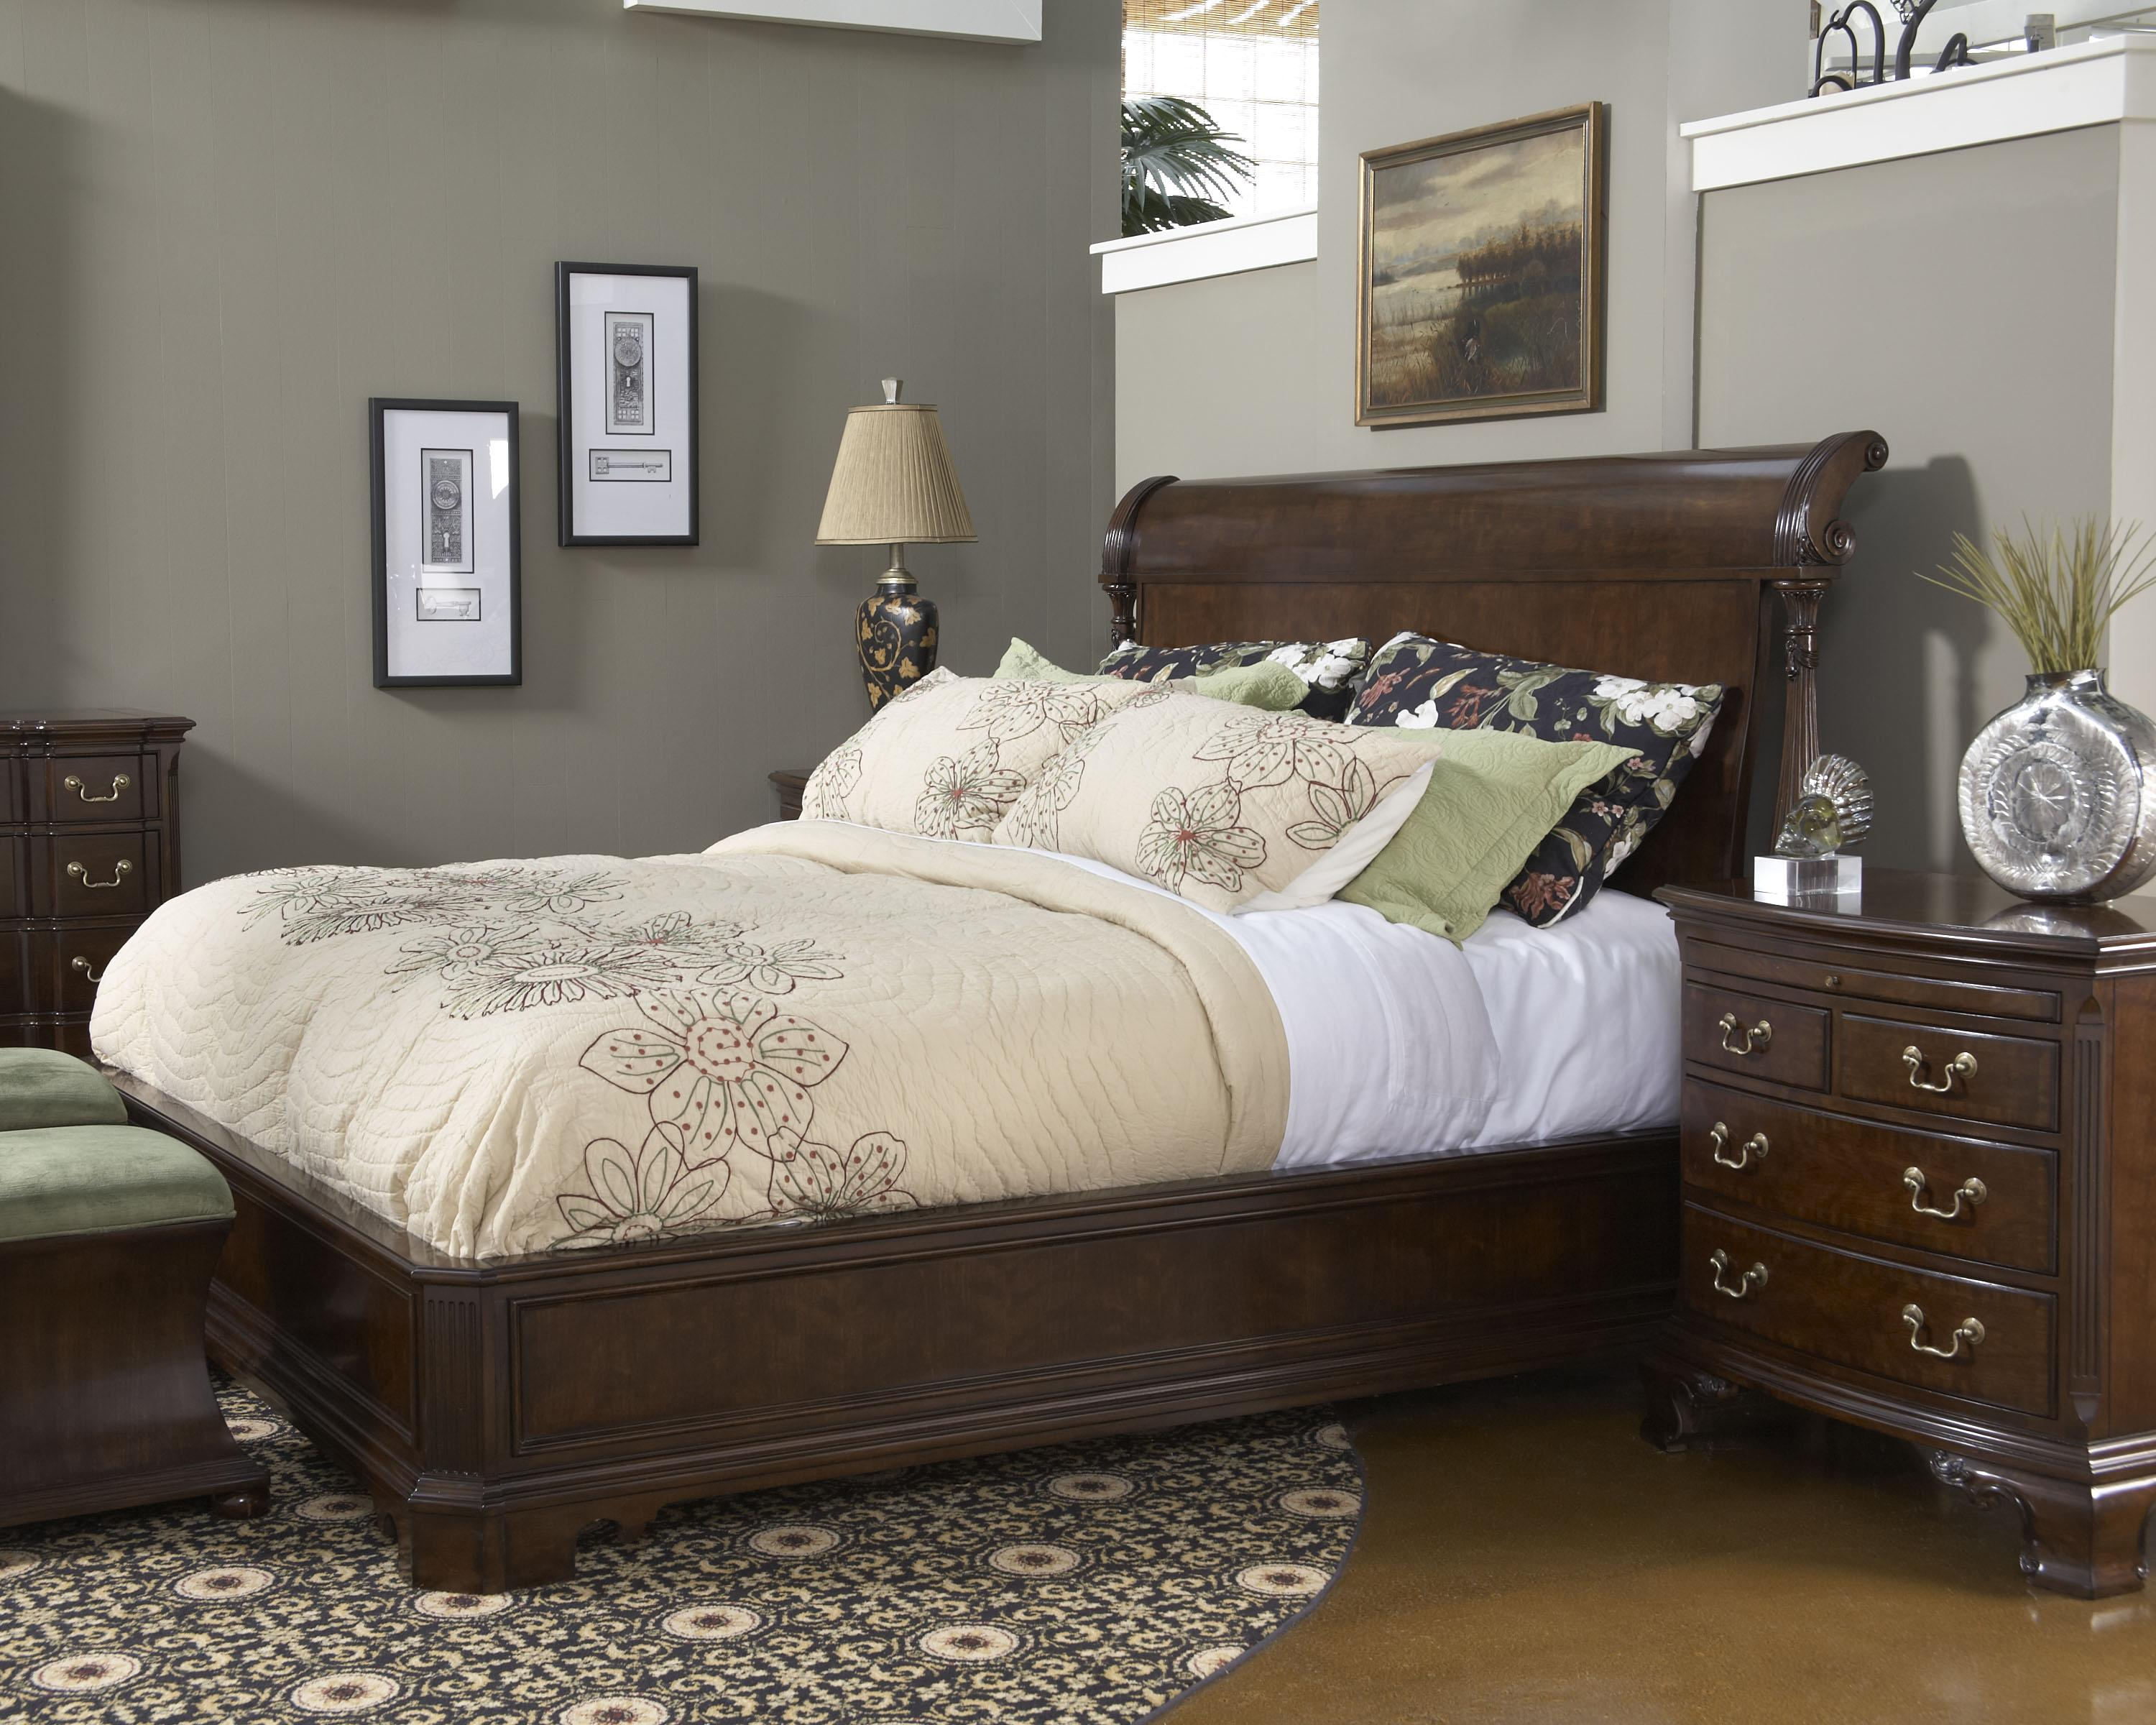 King size charleston platform panel bed with rounded headboard by fine furniture design wolf American home furniture bedroom sets